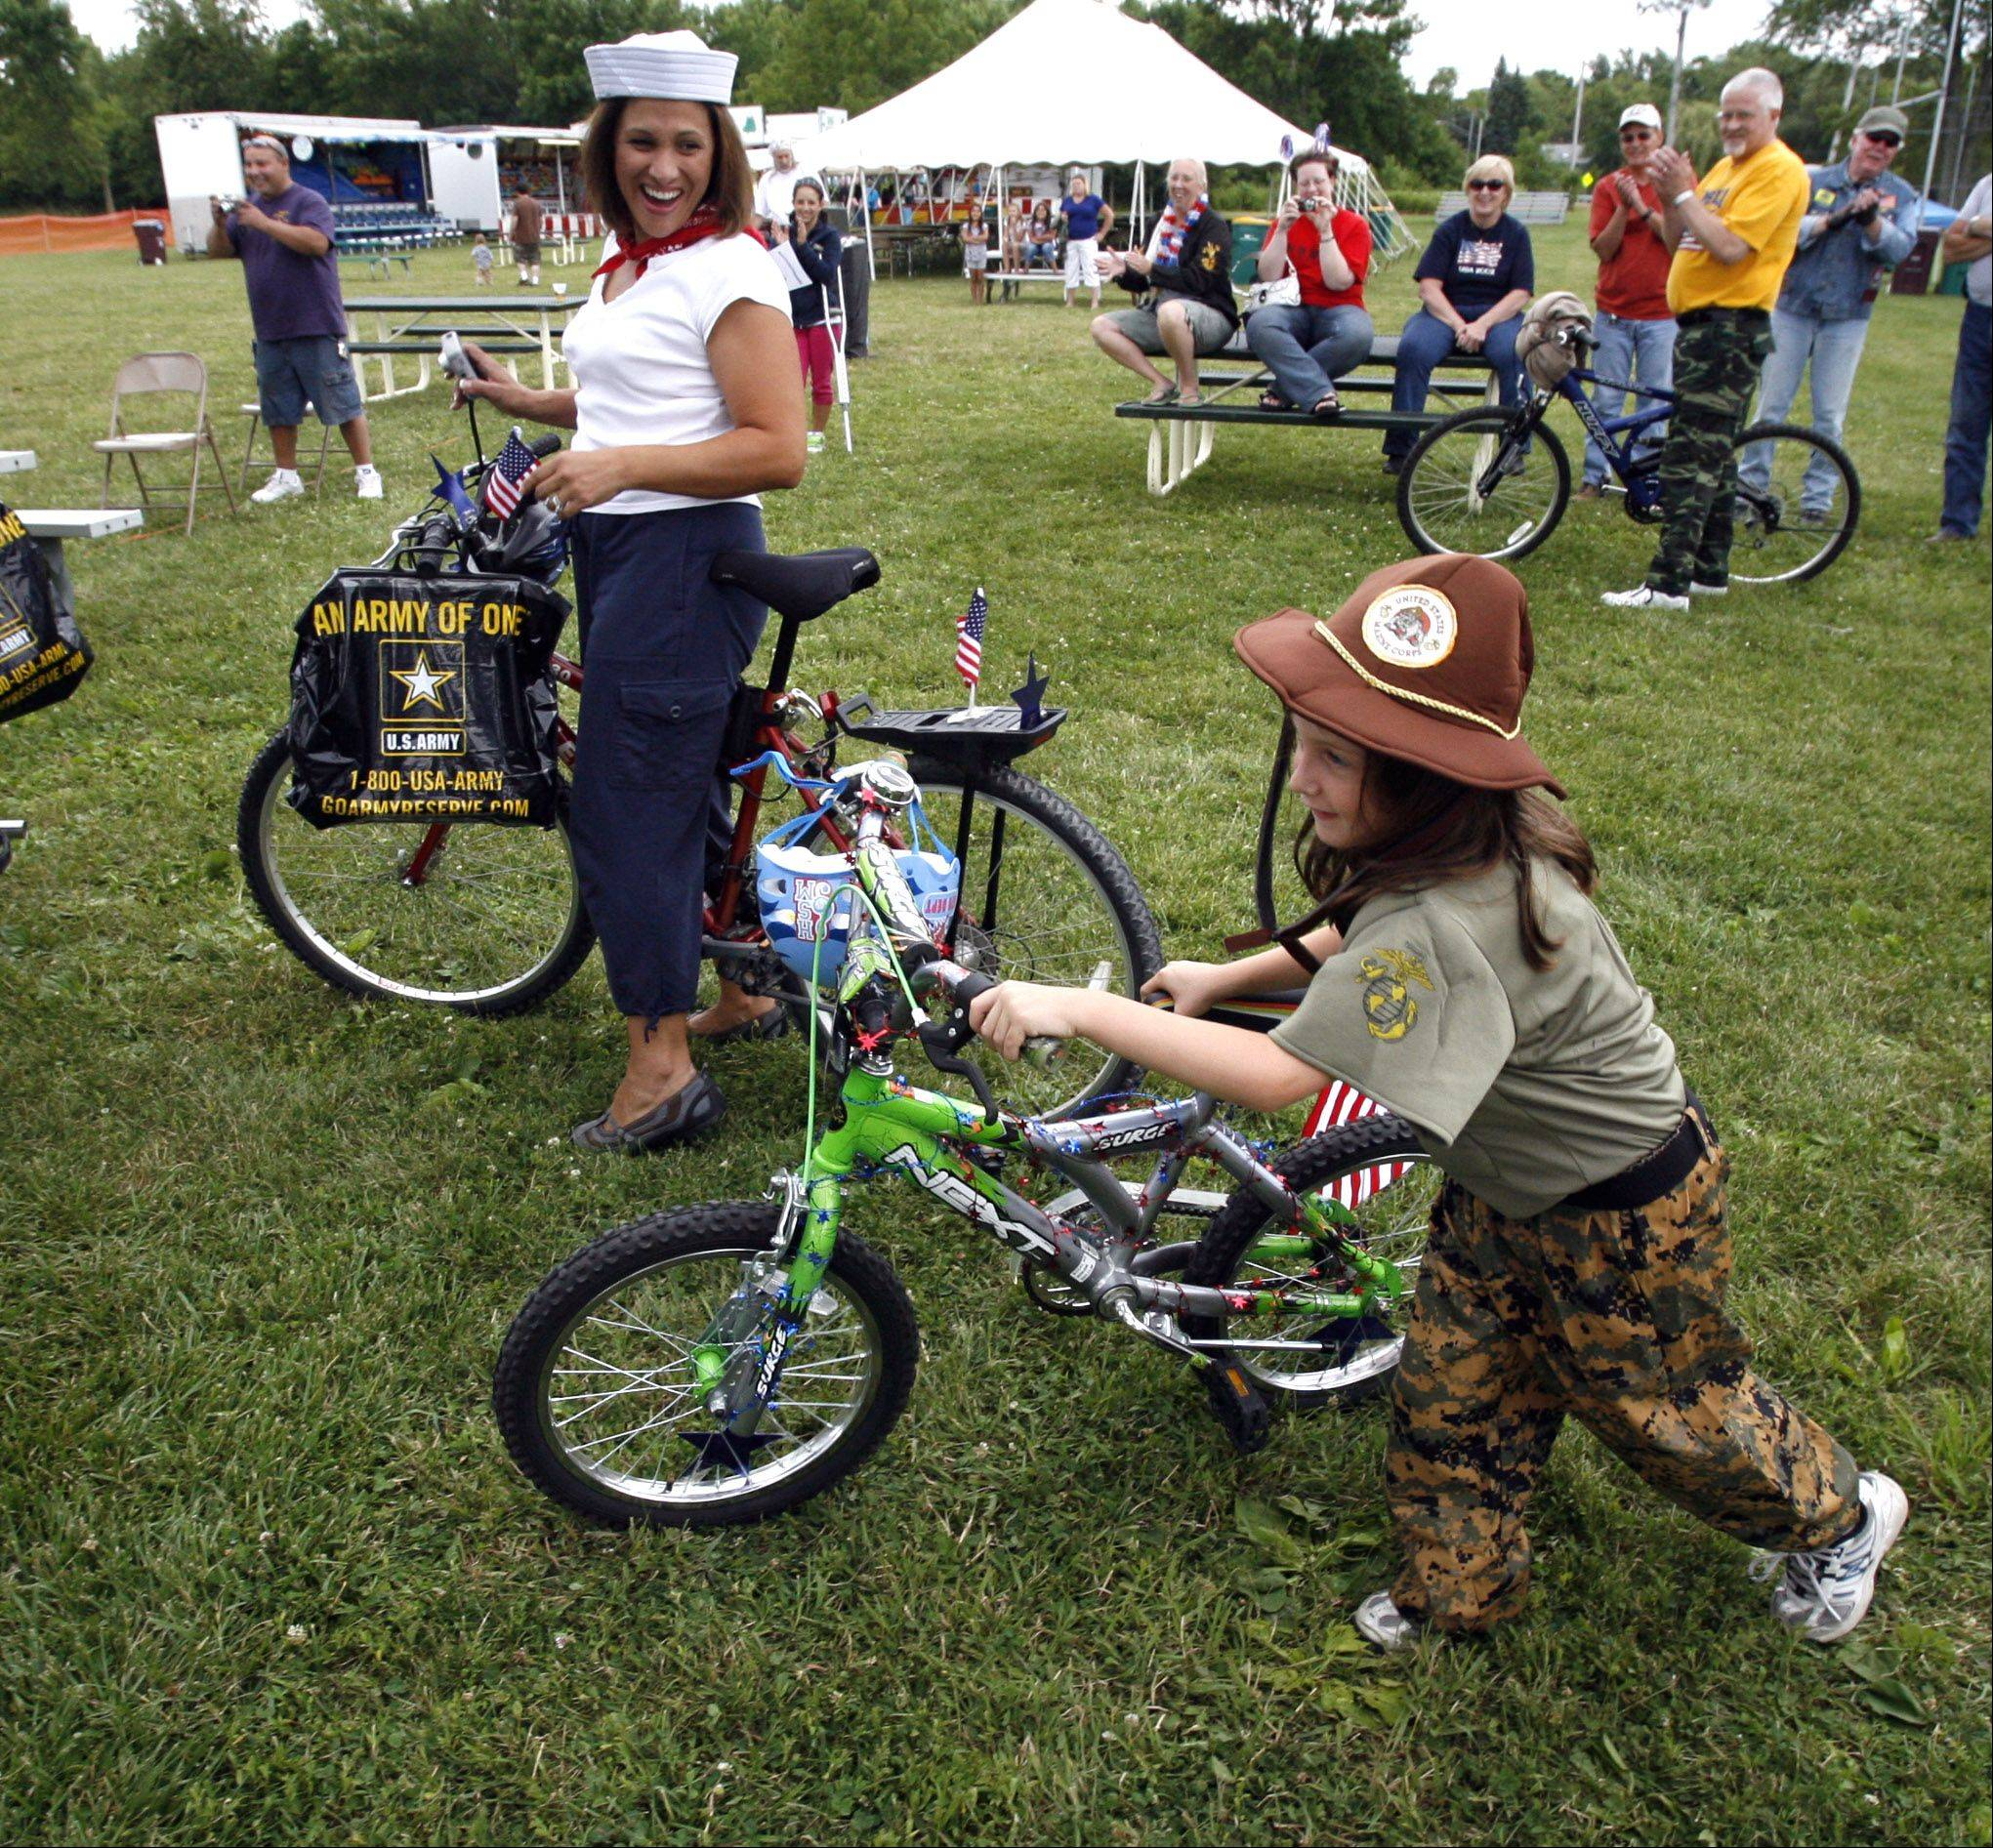 A bike and wagon parade is scheduled for Saturday at the Grandwood Park Summerfest.